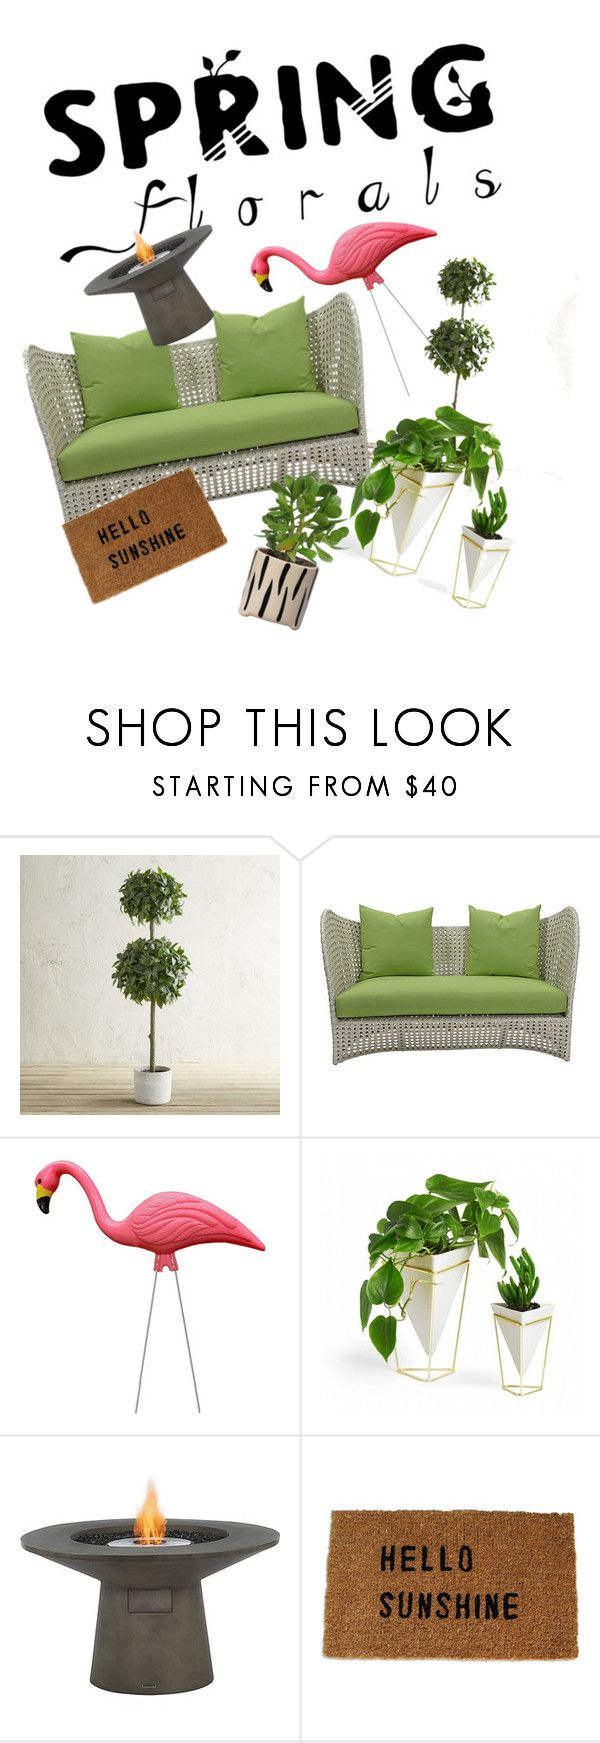 """""""Hello Sunshine"""" by fashionista-girlie-of-arts ❤ liked on Polyvore featuring interior, interiors, interior design, home, home decor, interior decorating, Pier 1 Imports, David Francis Furniture, Umbra and springflorals"""